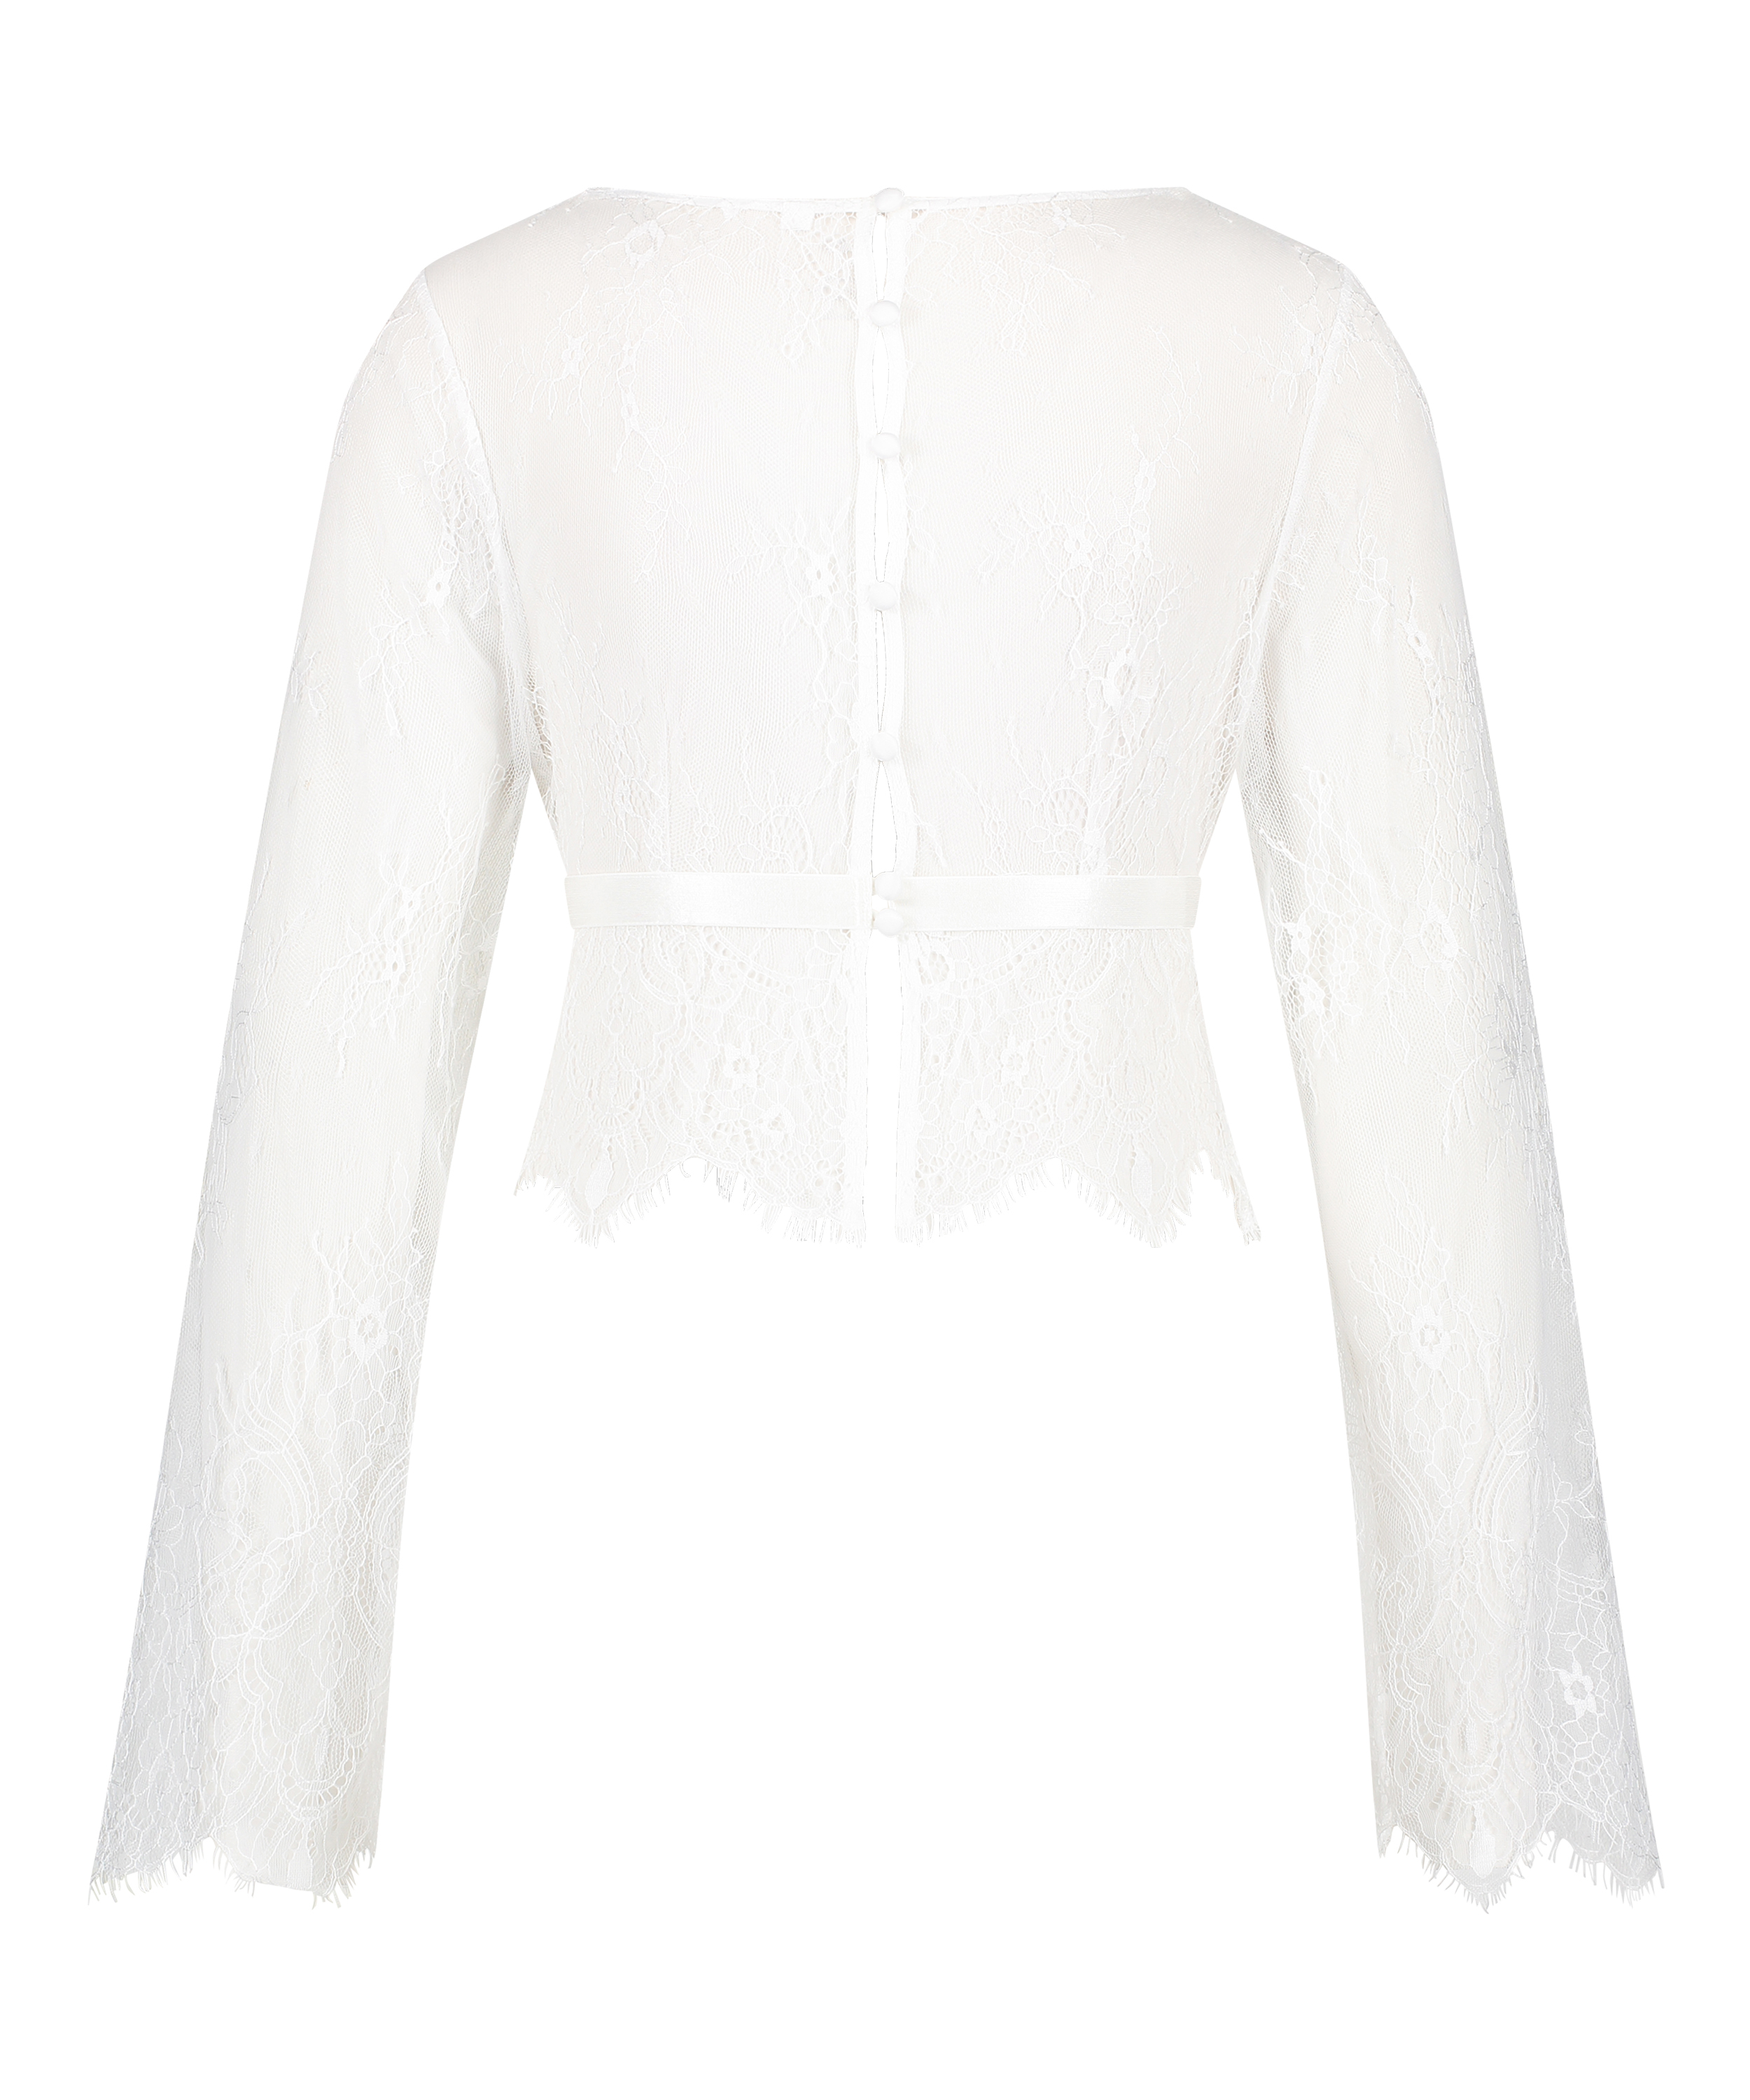 Top Allover Lace, Wit, main